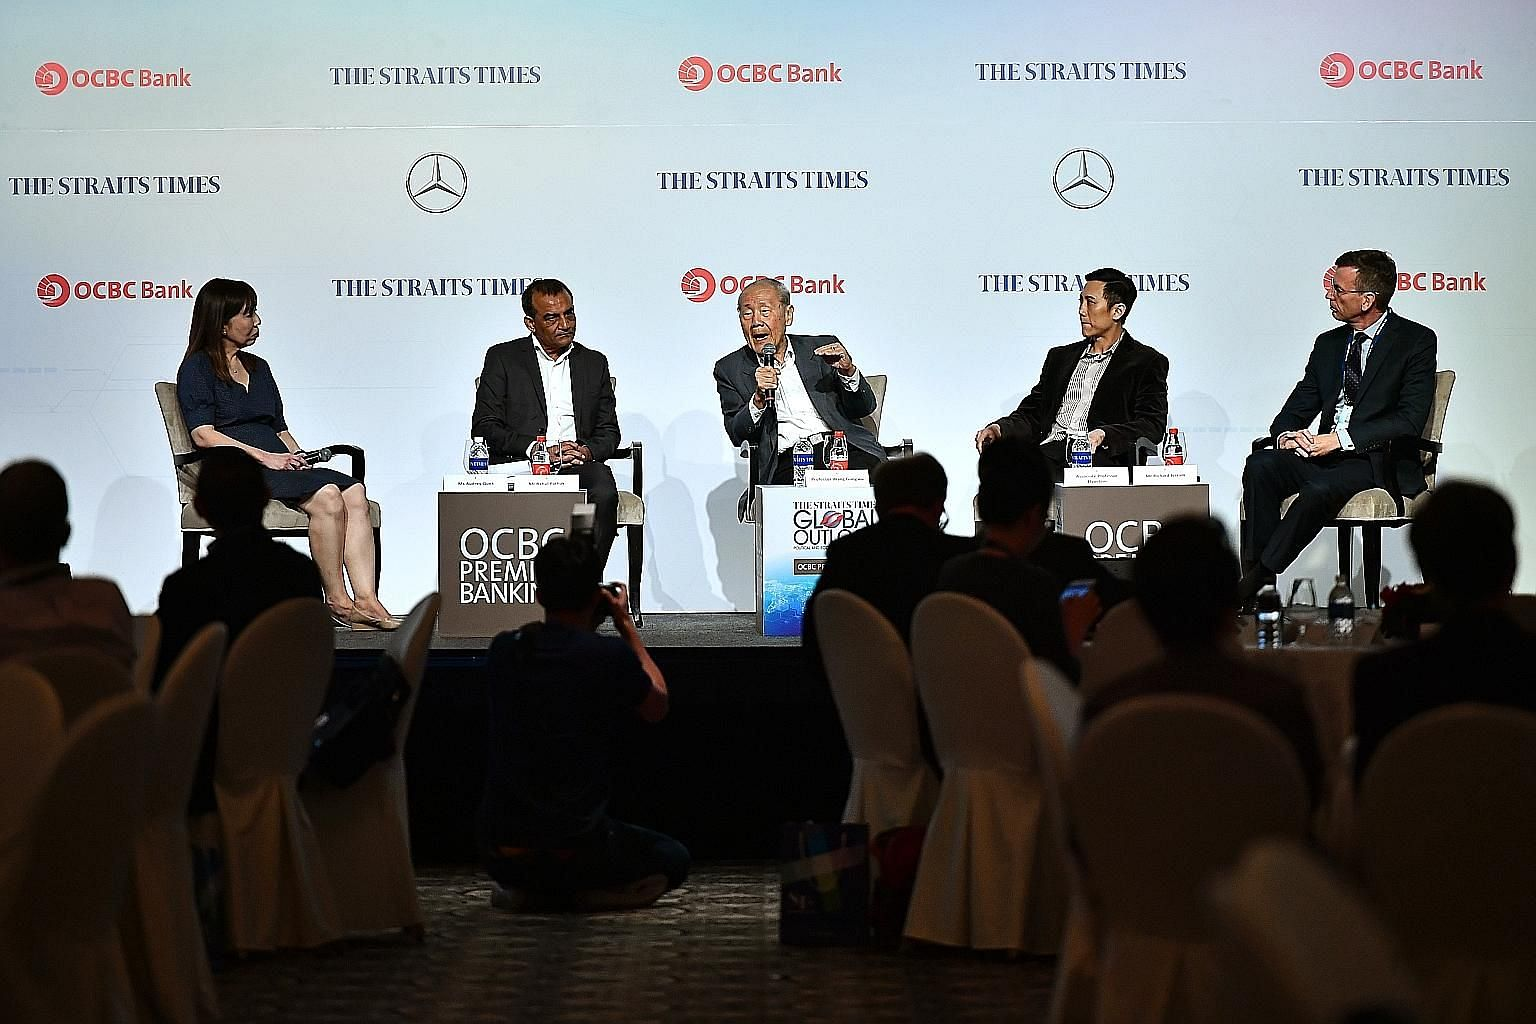 Taking the stage at The Straits Times Global Outlook Forum yesterday were (from left) Ms Audrey Quek, moderator and ST opinion editor; Mr Rahul Pathak, ST associate editor; Professor Wang Gungwu, chairman of the ISEAS - Yusof Ishak Institute and NUS'